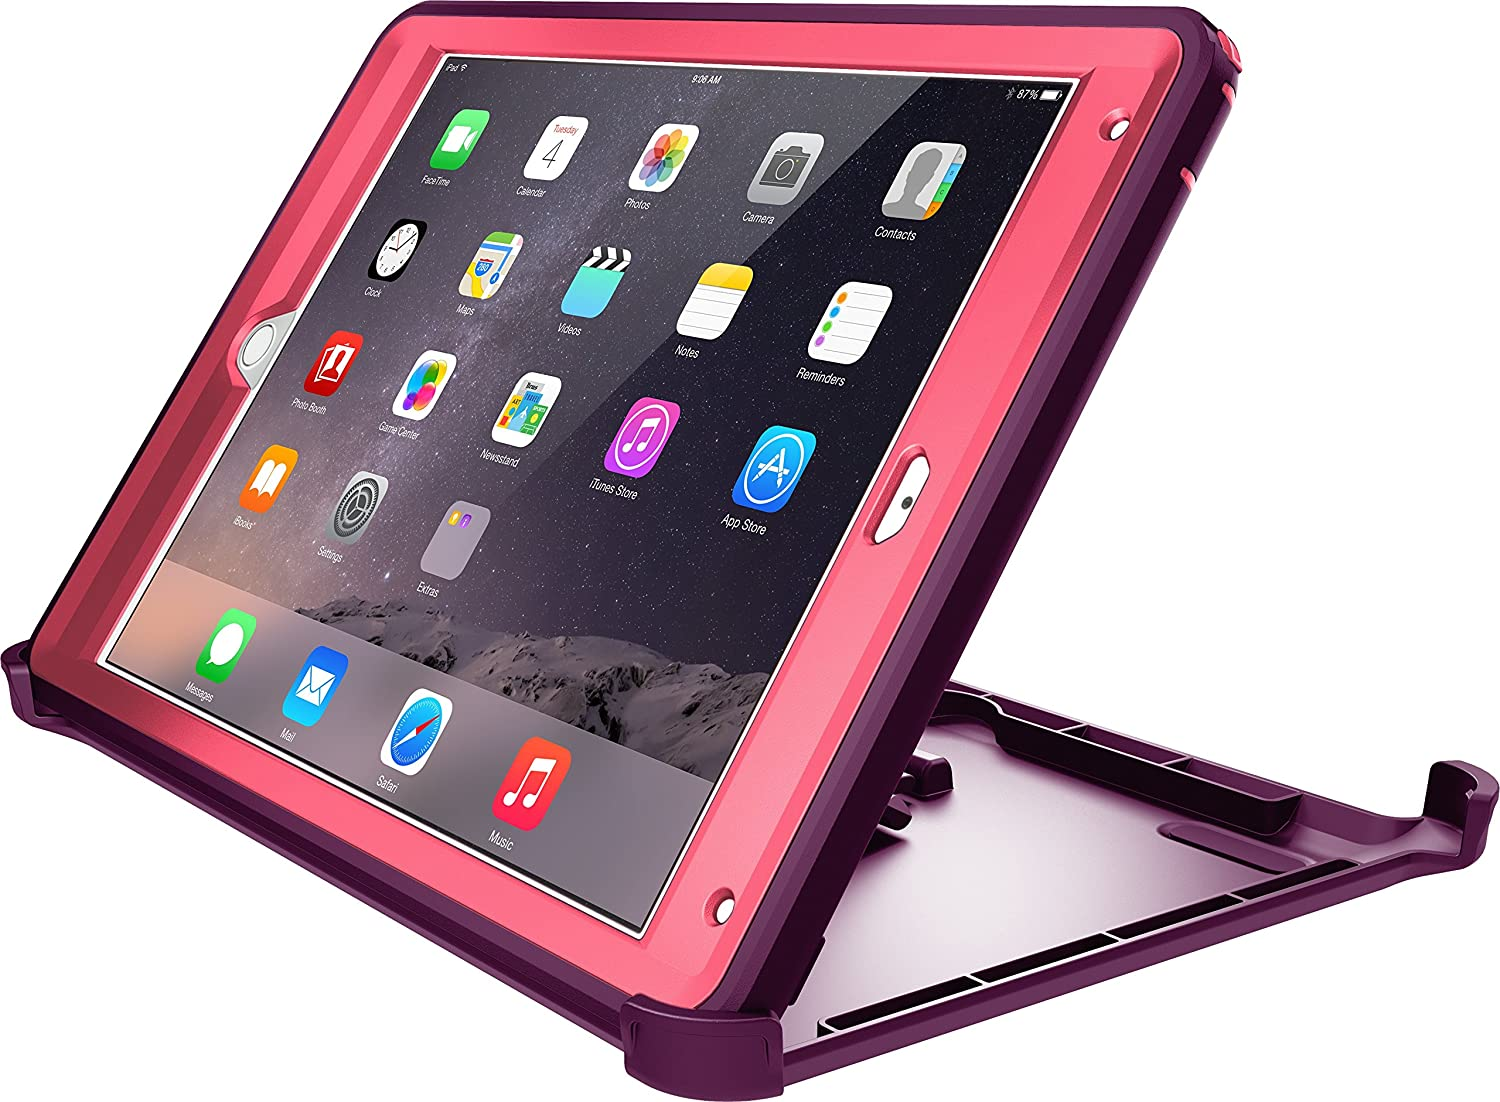 OtterBox Defender Series Case for iPad Air 2 – Crushed Damson